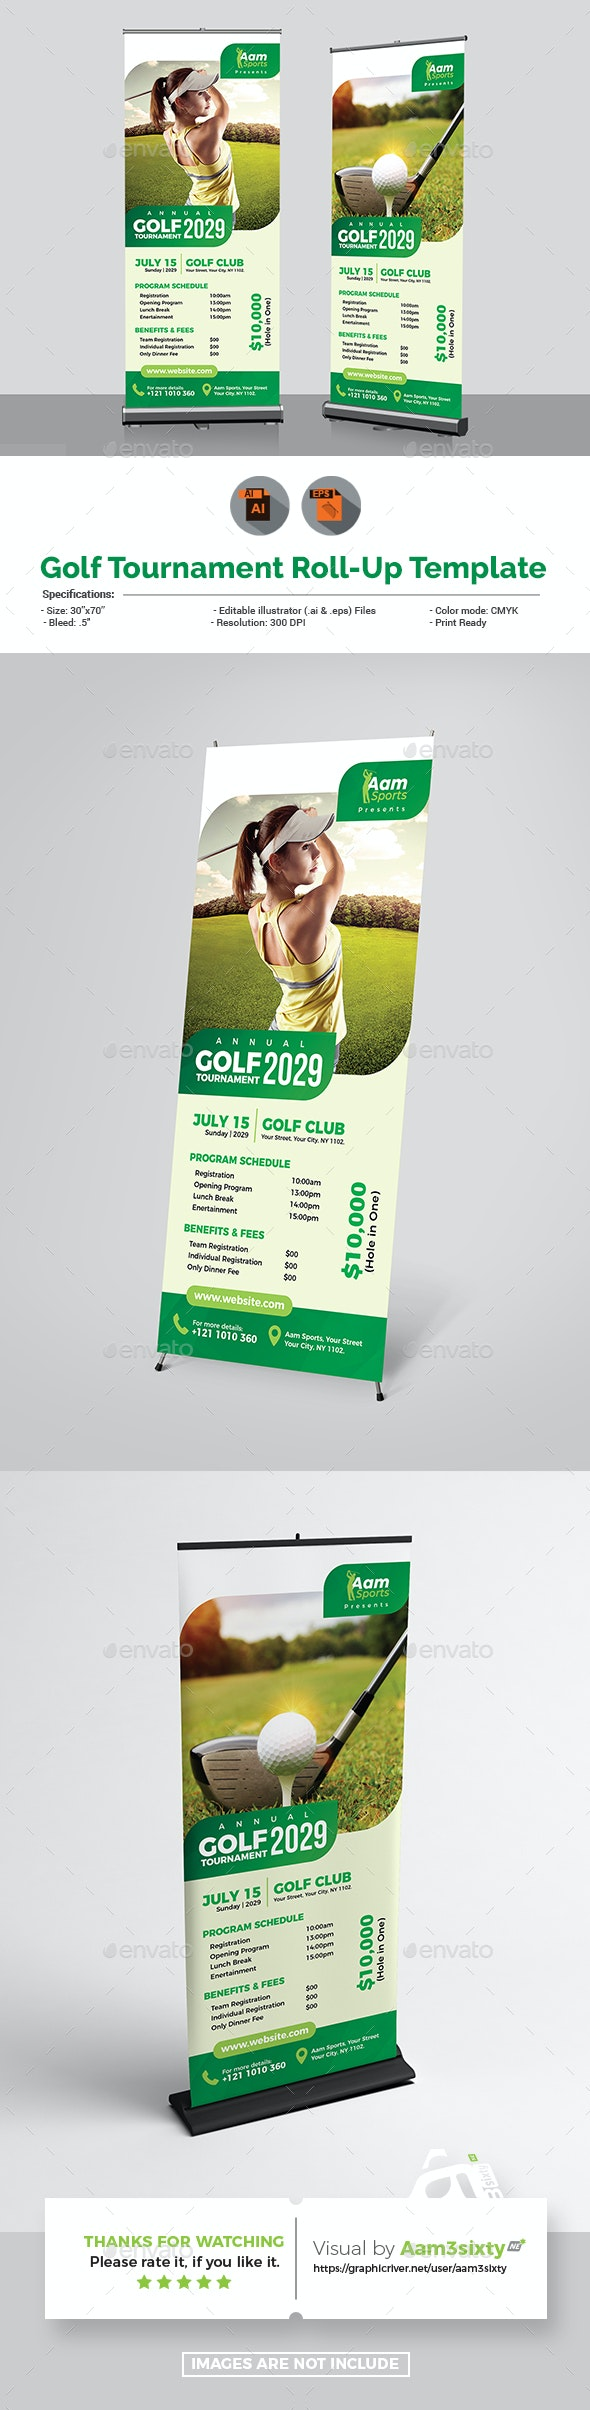 Golf Tournament Rollup Banner - Signage Print Templates